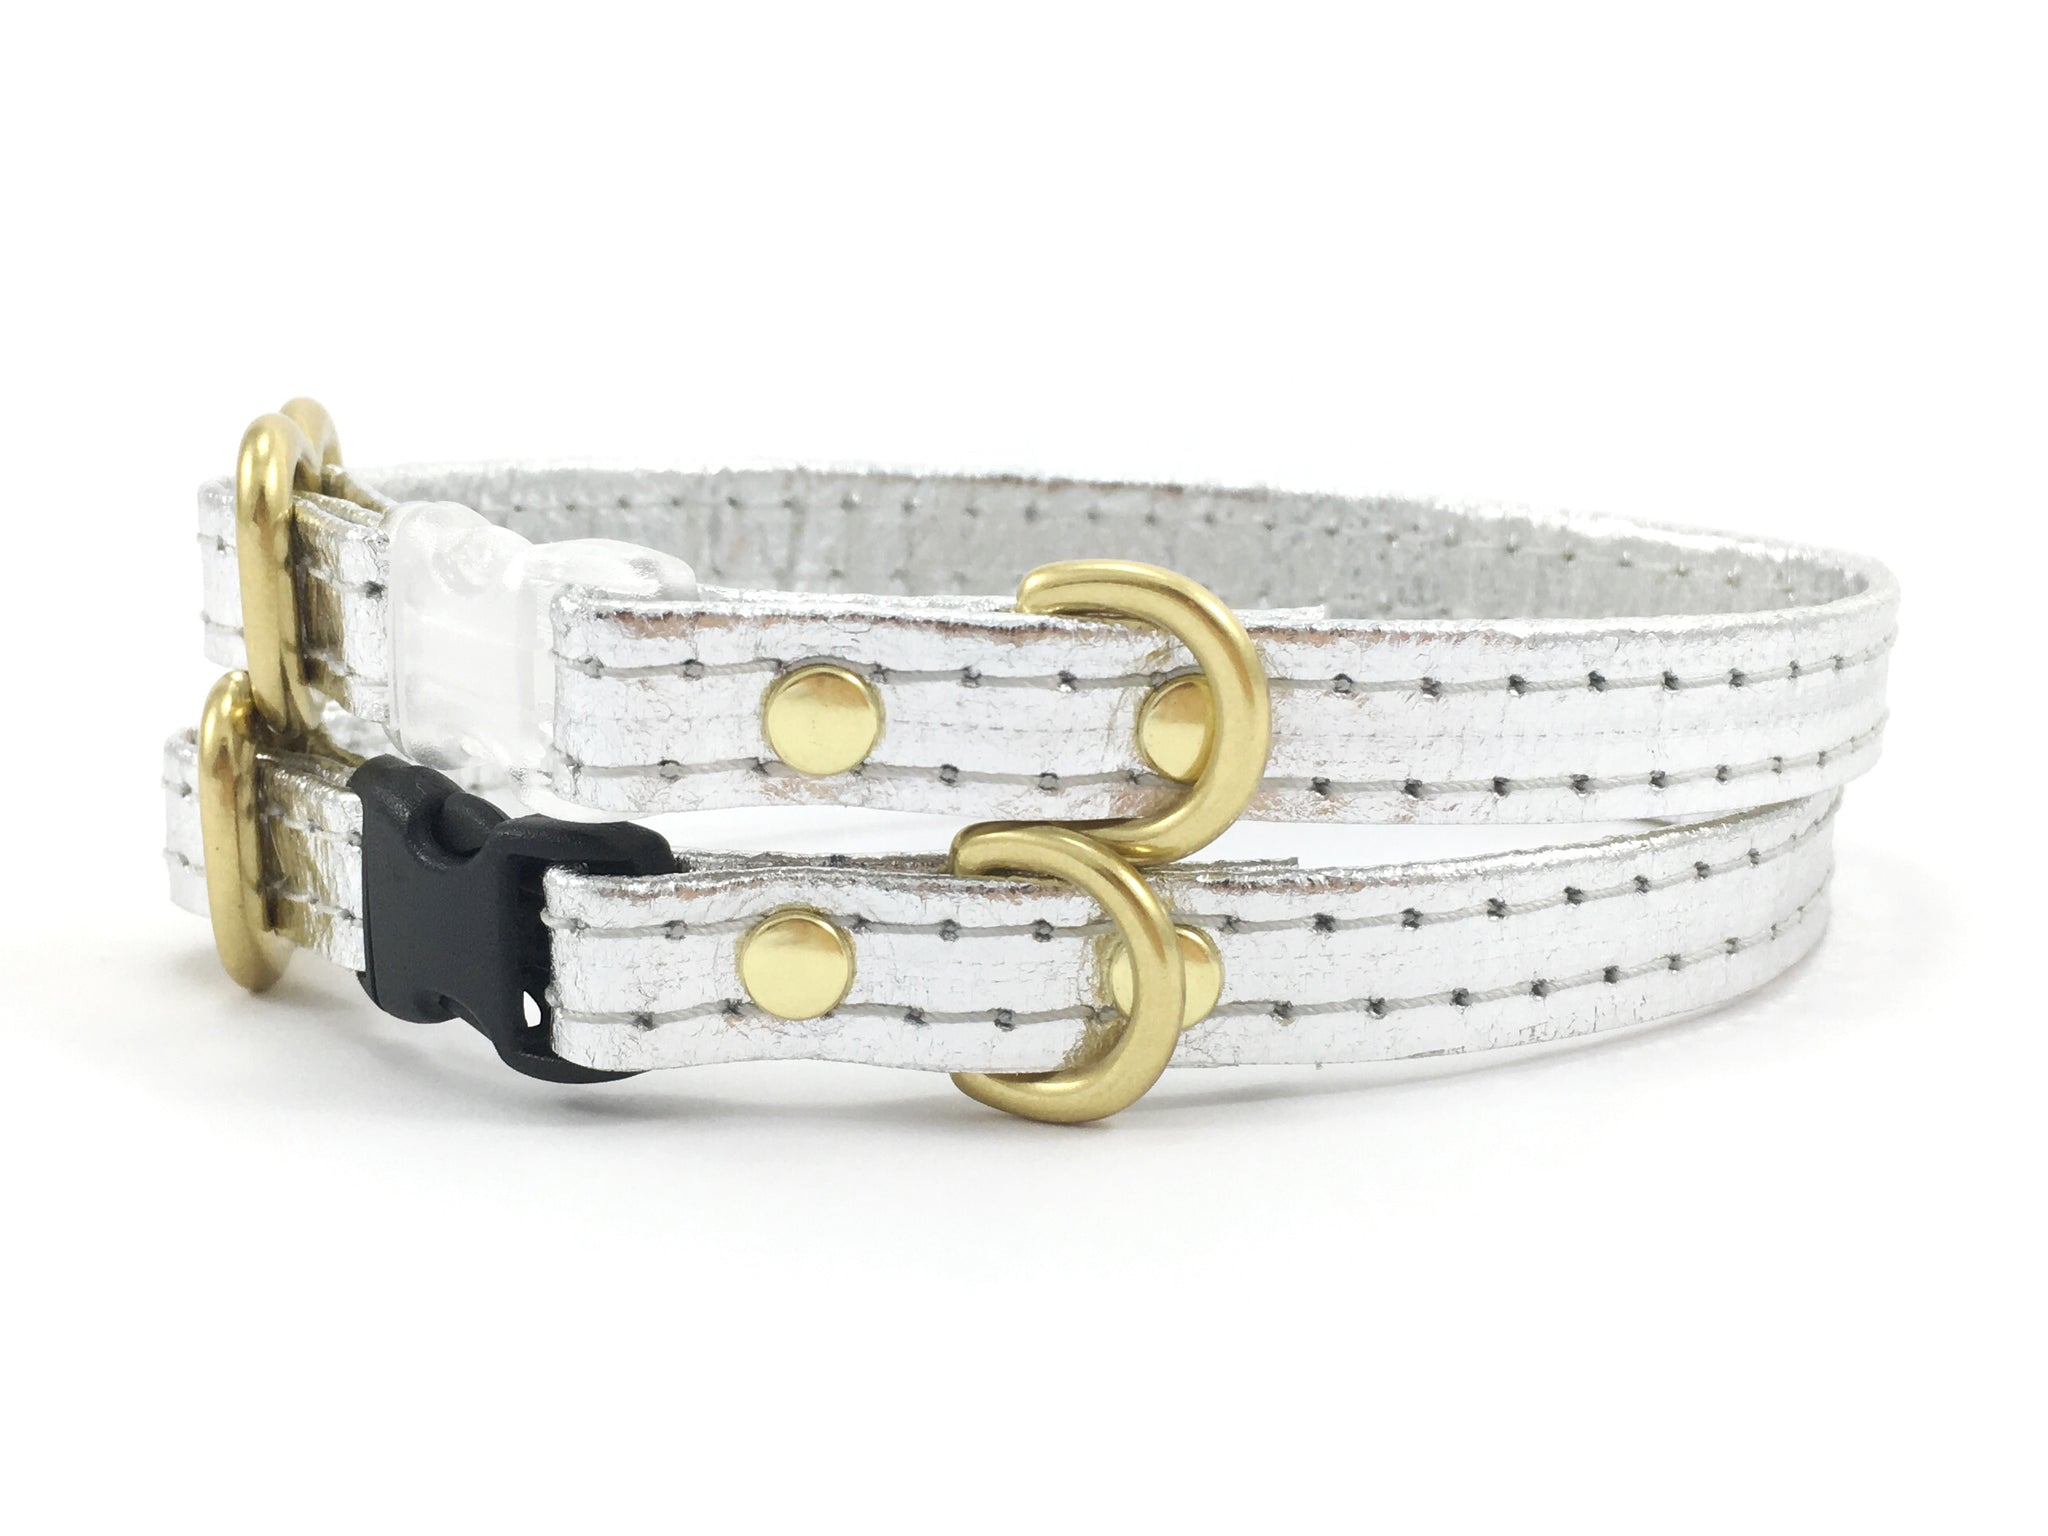 Silver Miniature Dog Collar in Piñatex Vegan Leather